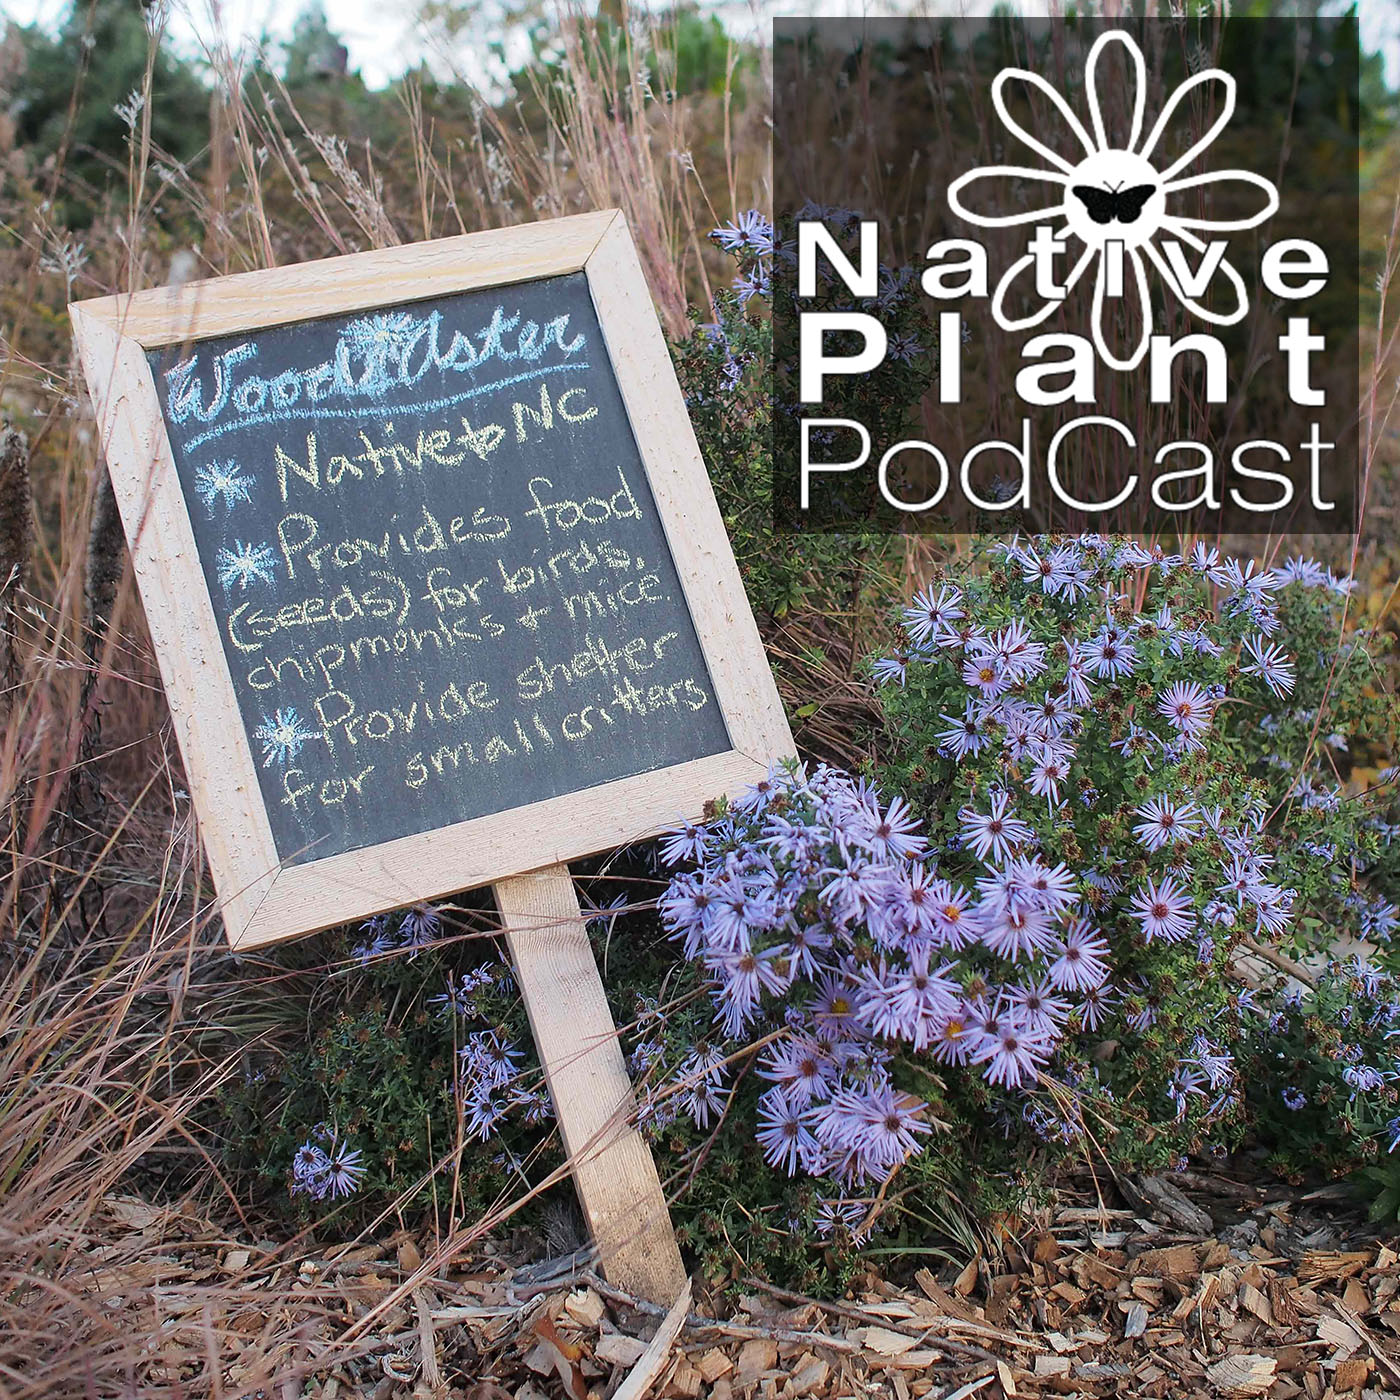 Podcasts - The Native Plant Podcast